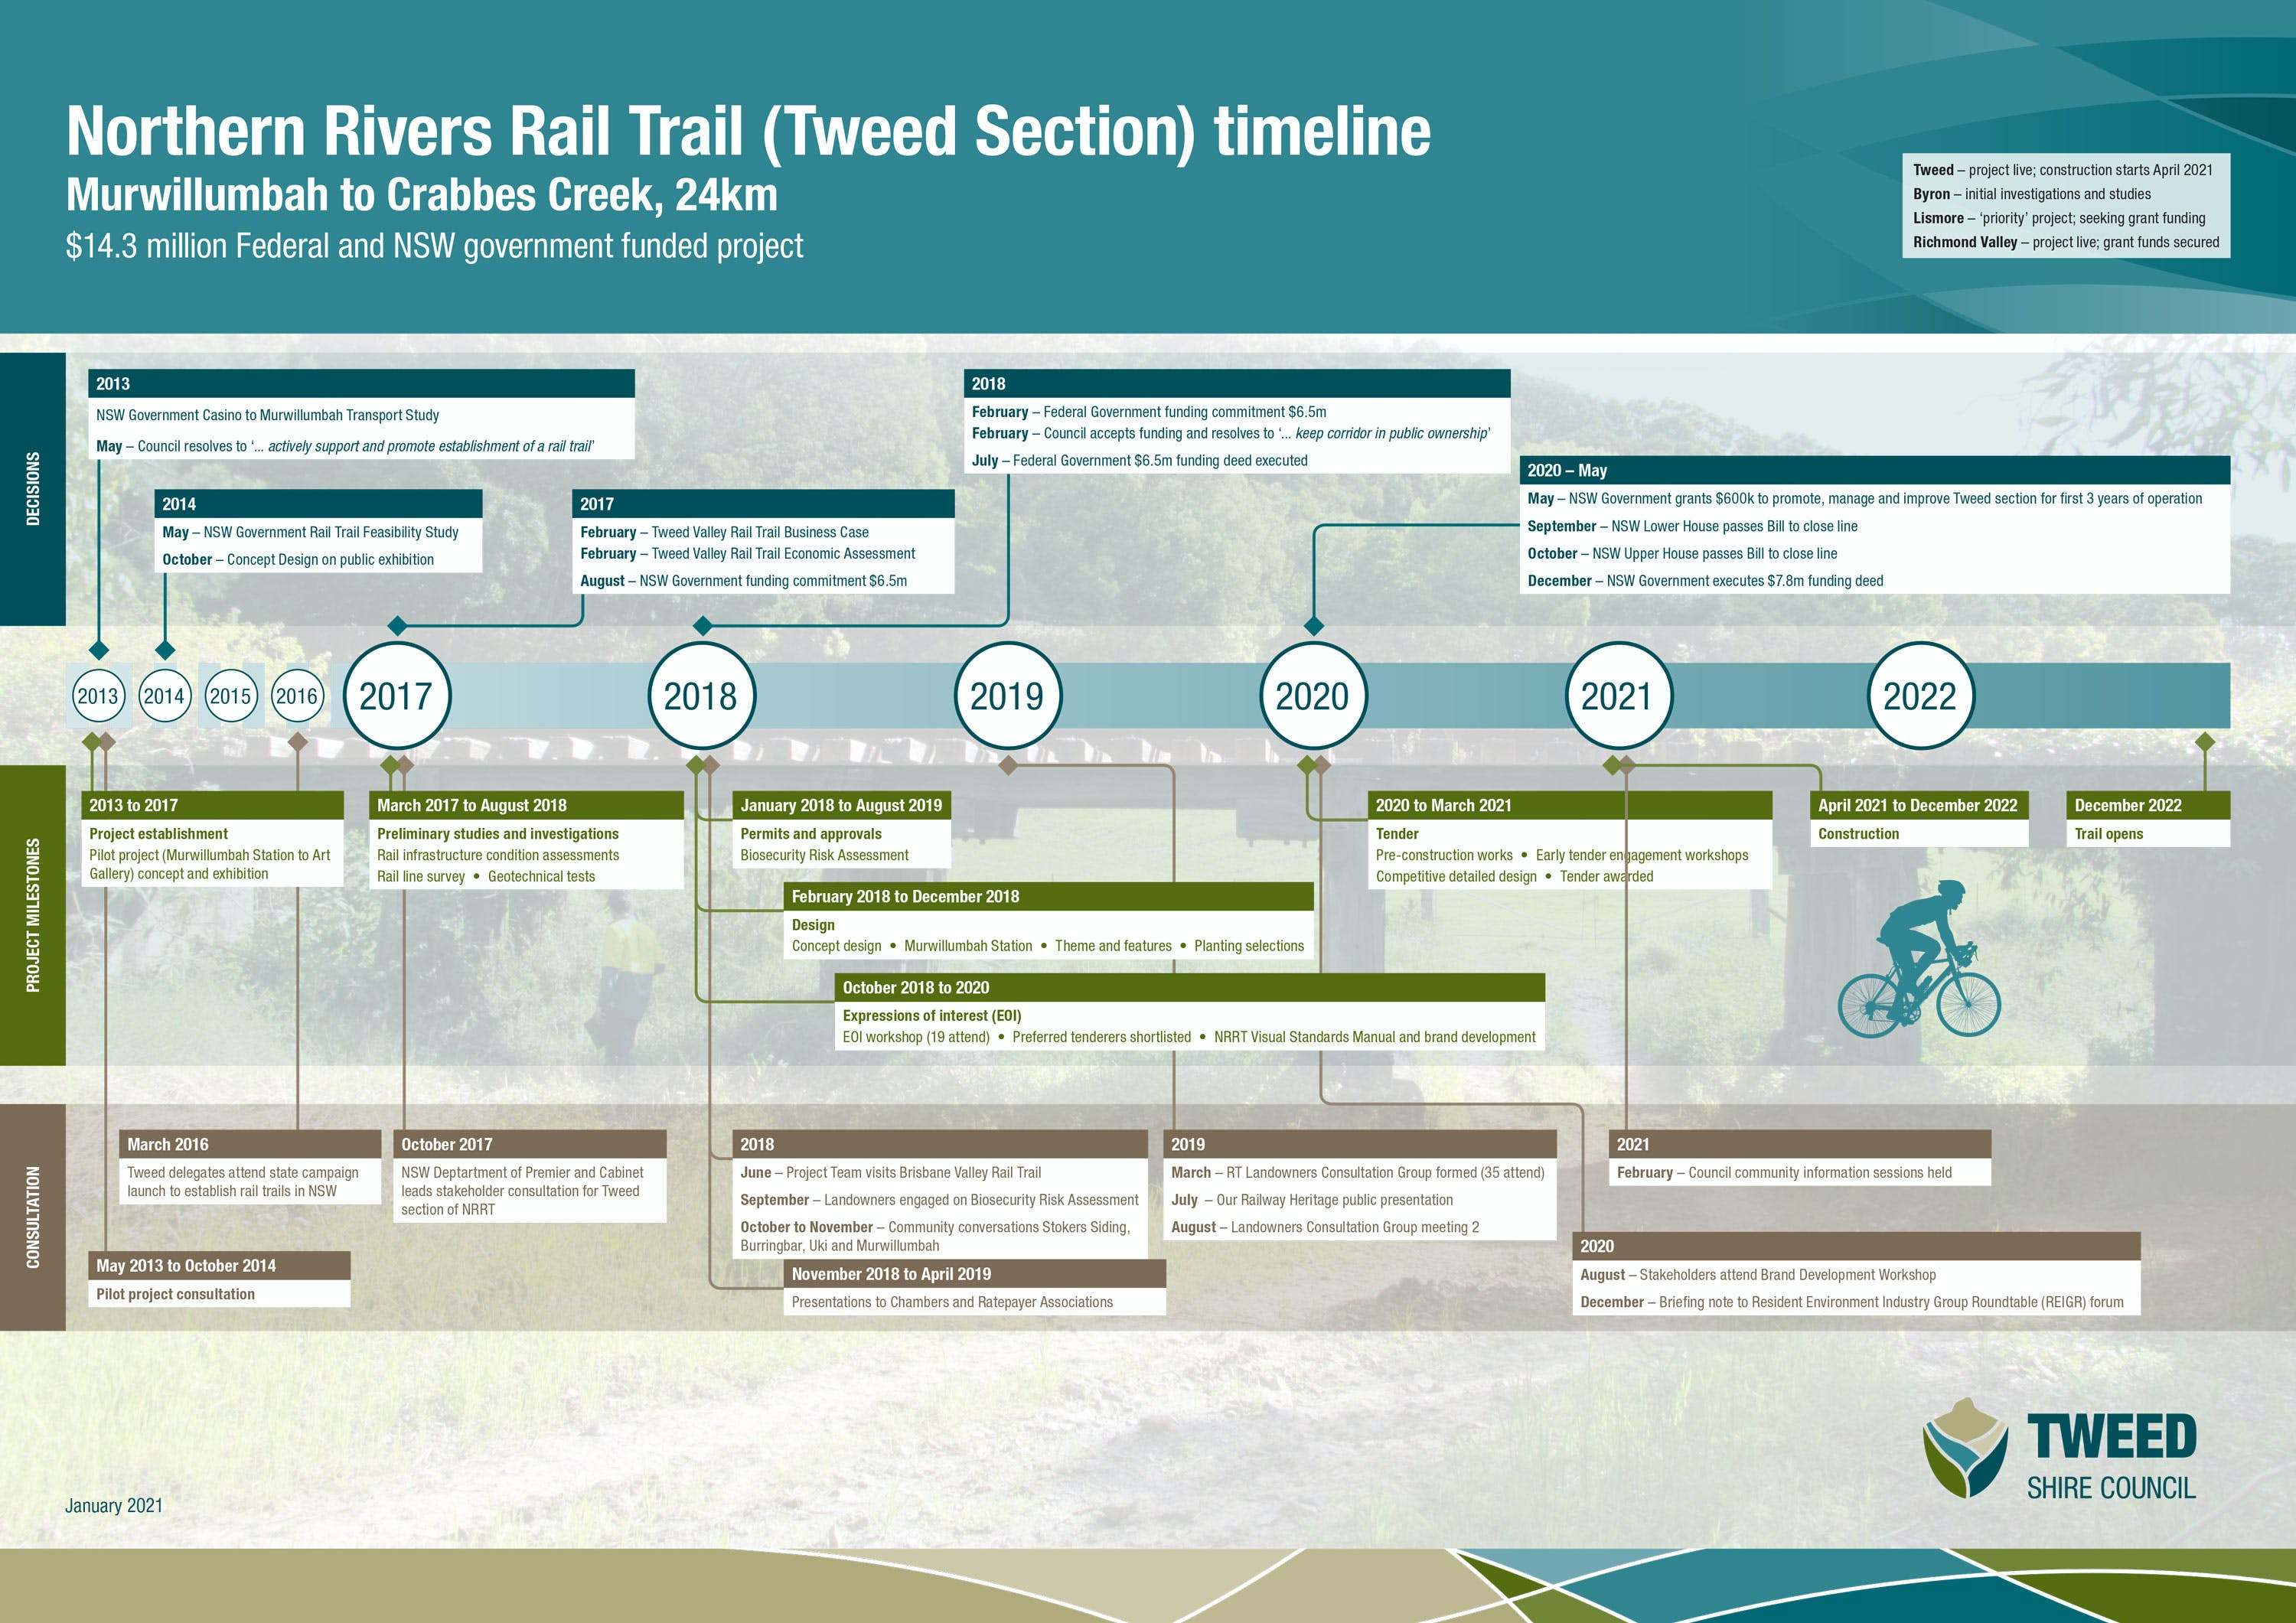 1266_NRRail-Trail-(Tweed-section)-timeline.jpg